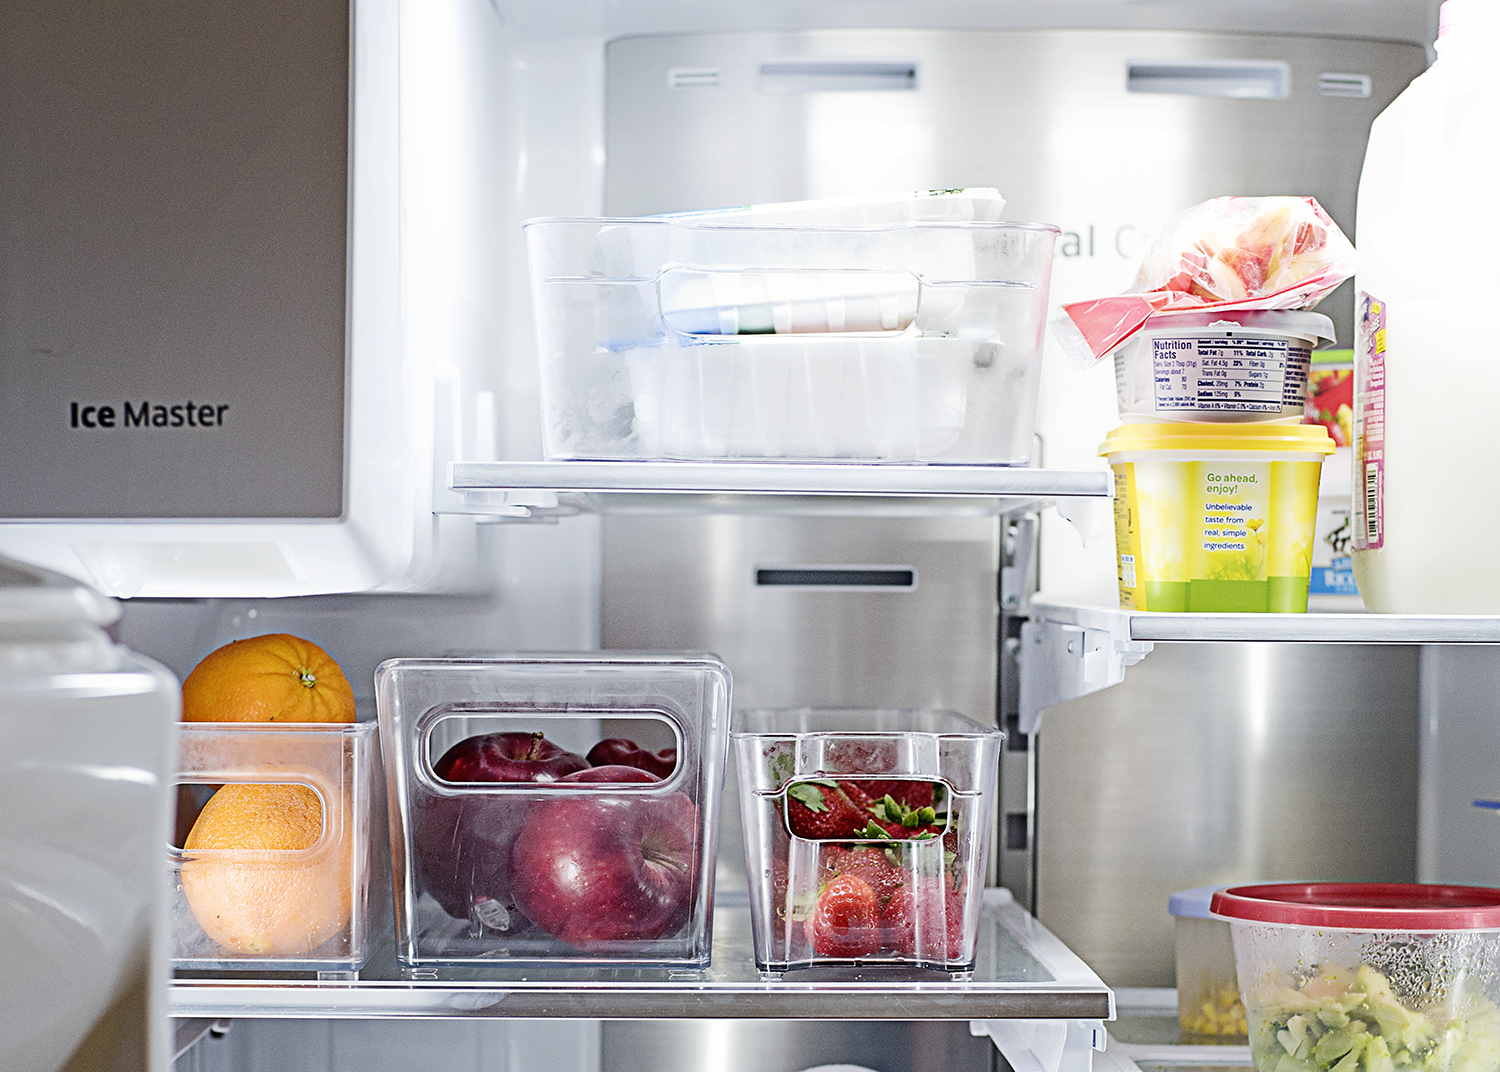 How to Keep Your Refrigerator Organized